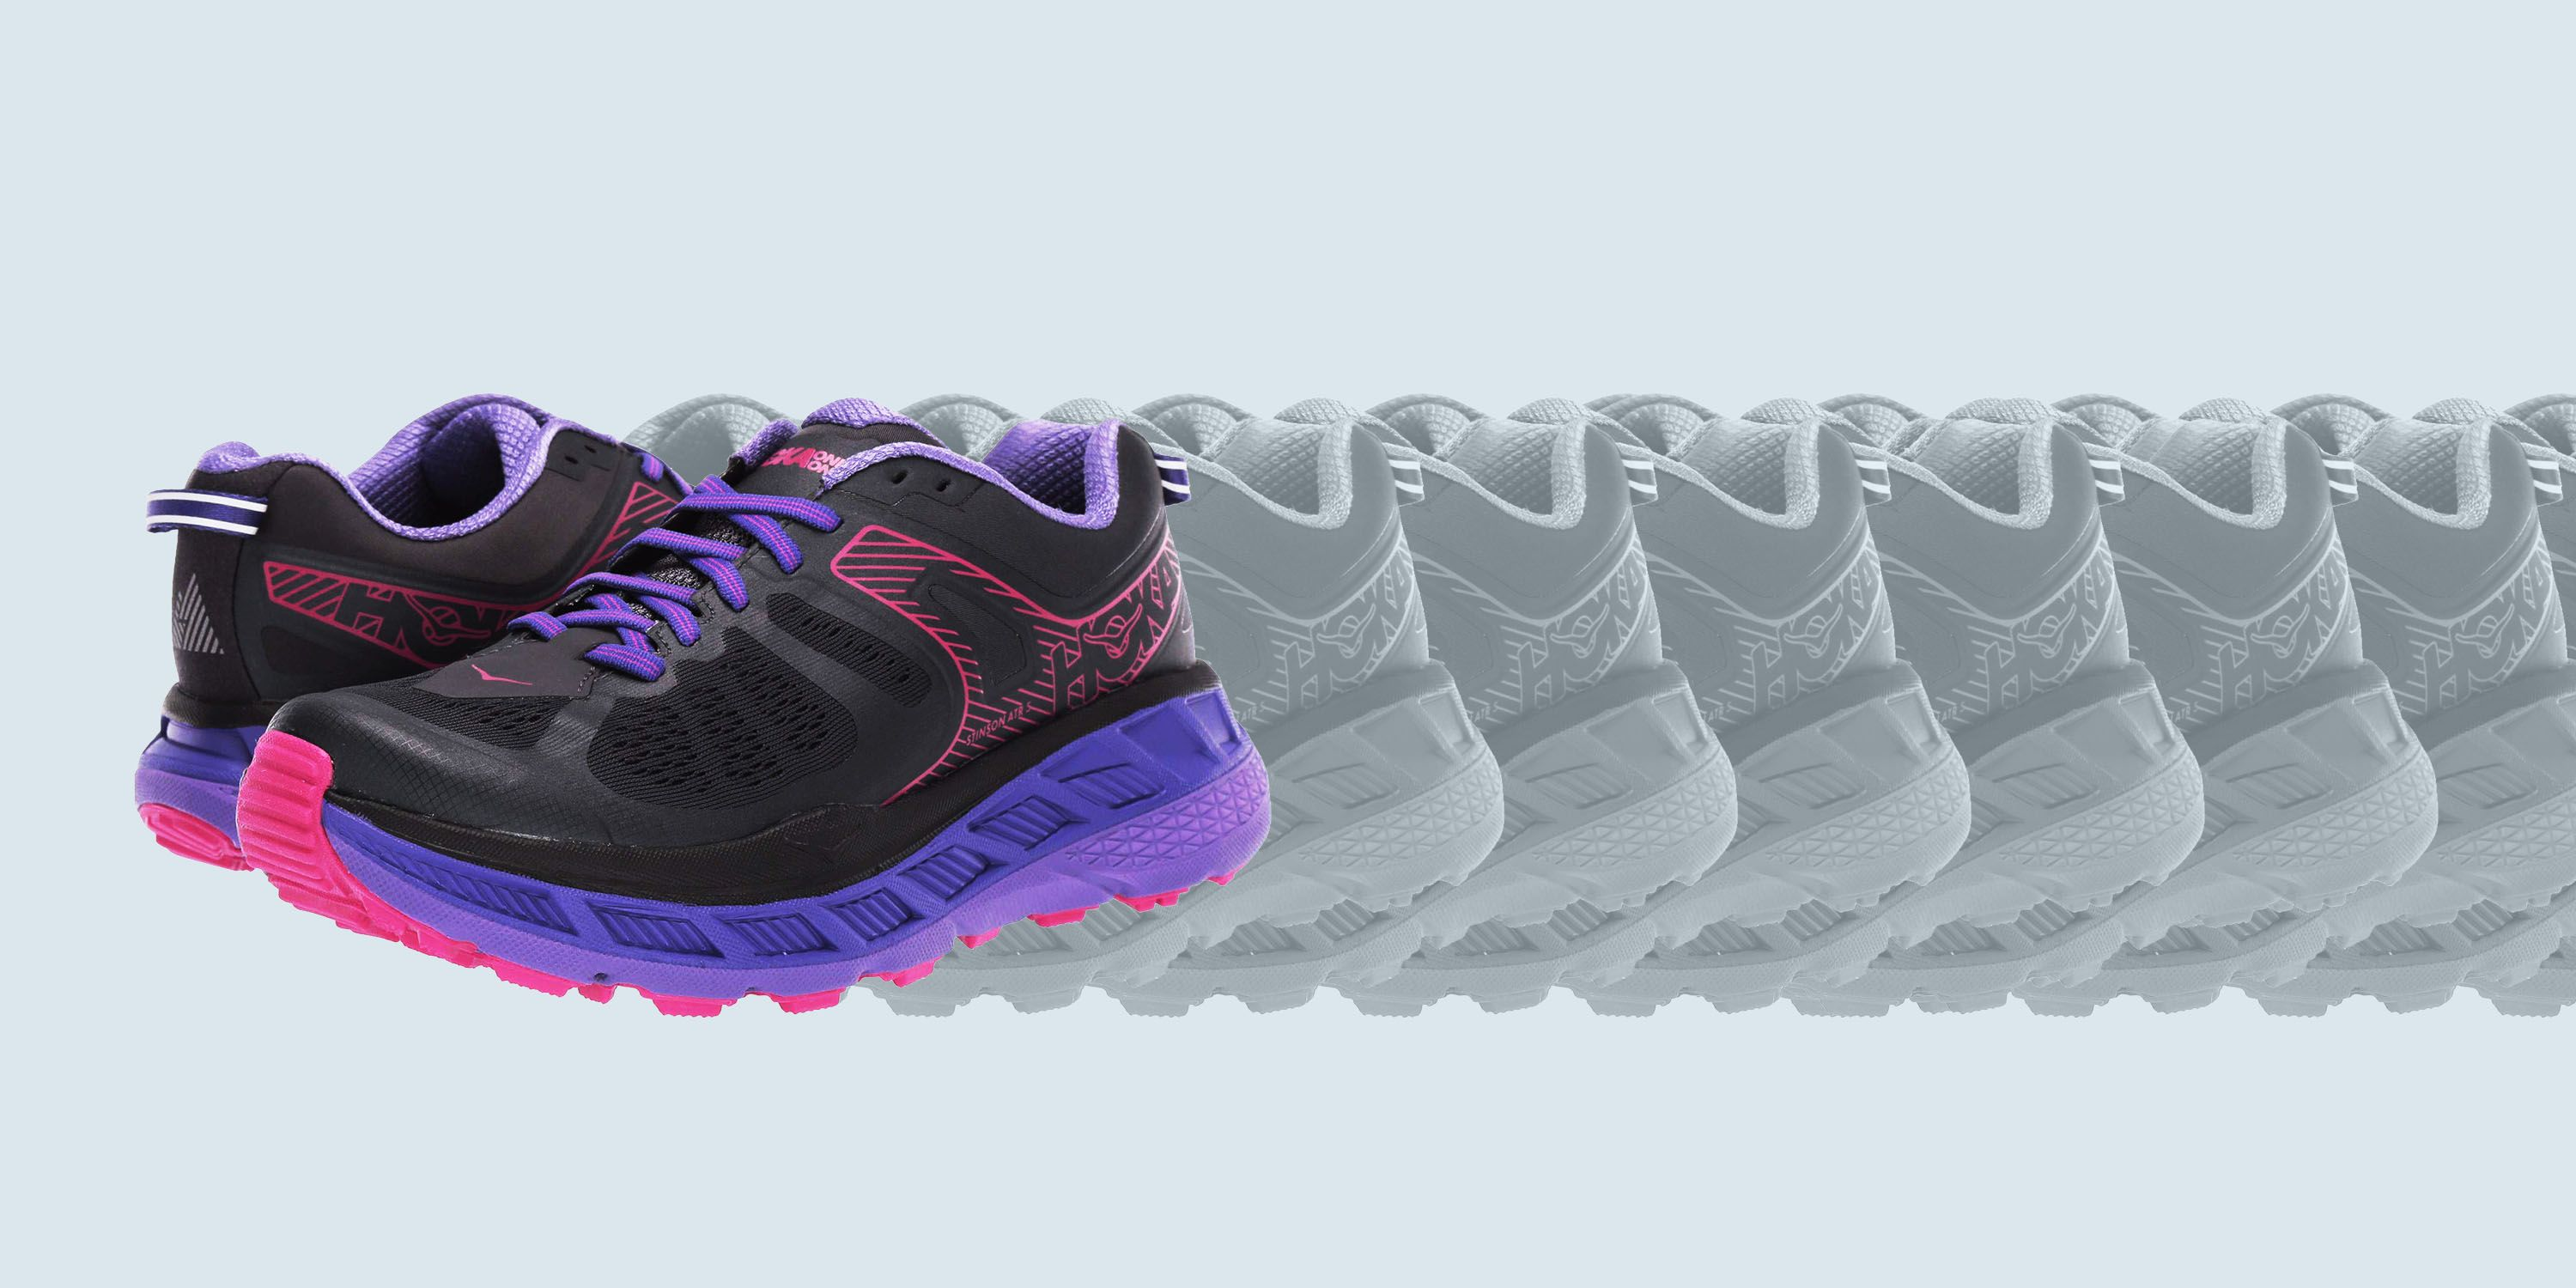 Trail, firness specialist : RUNNING SHOES NIKE FREE 4.0